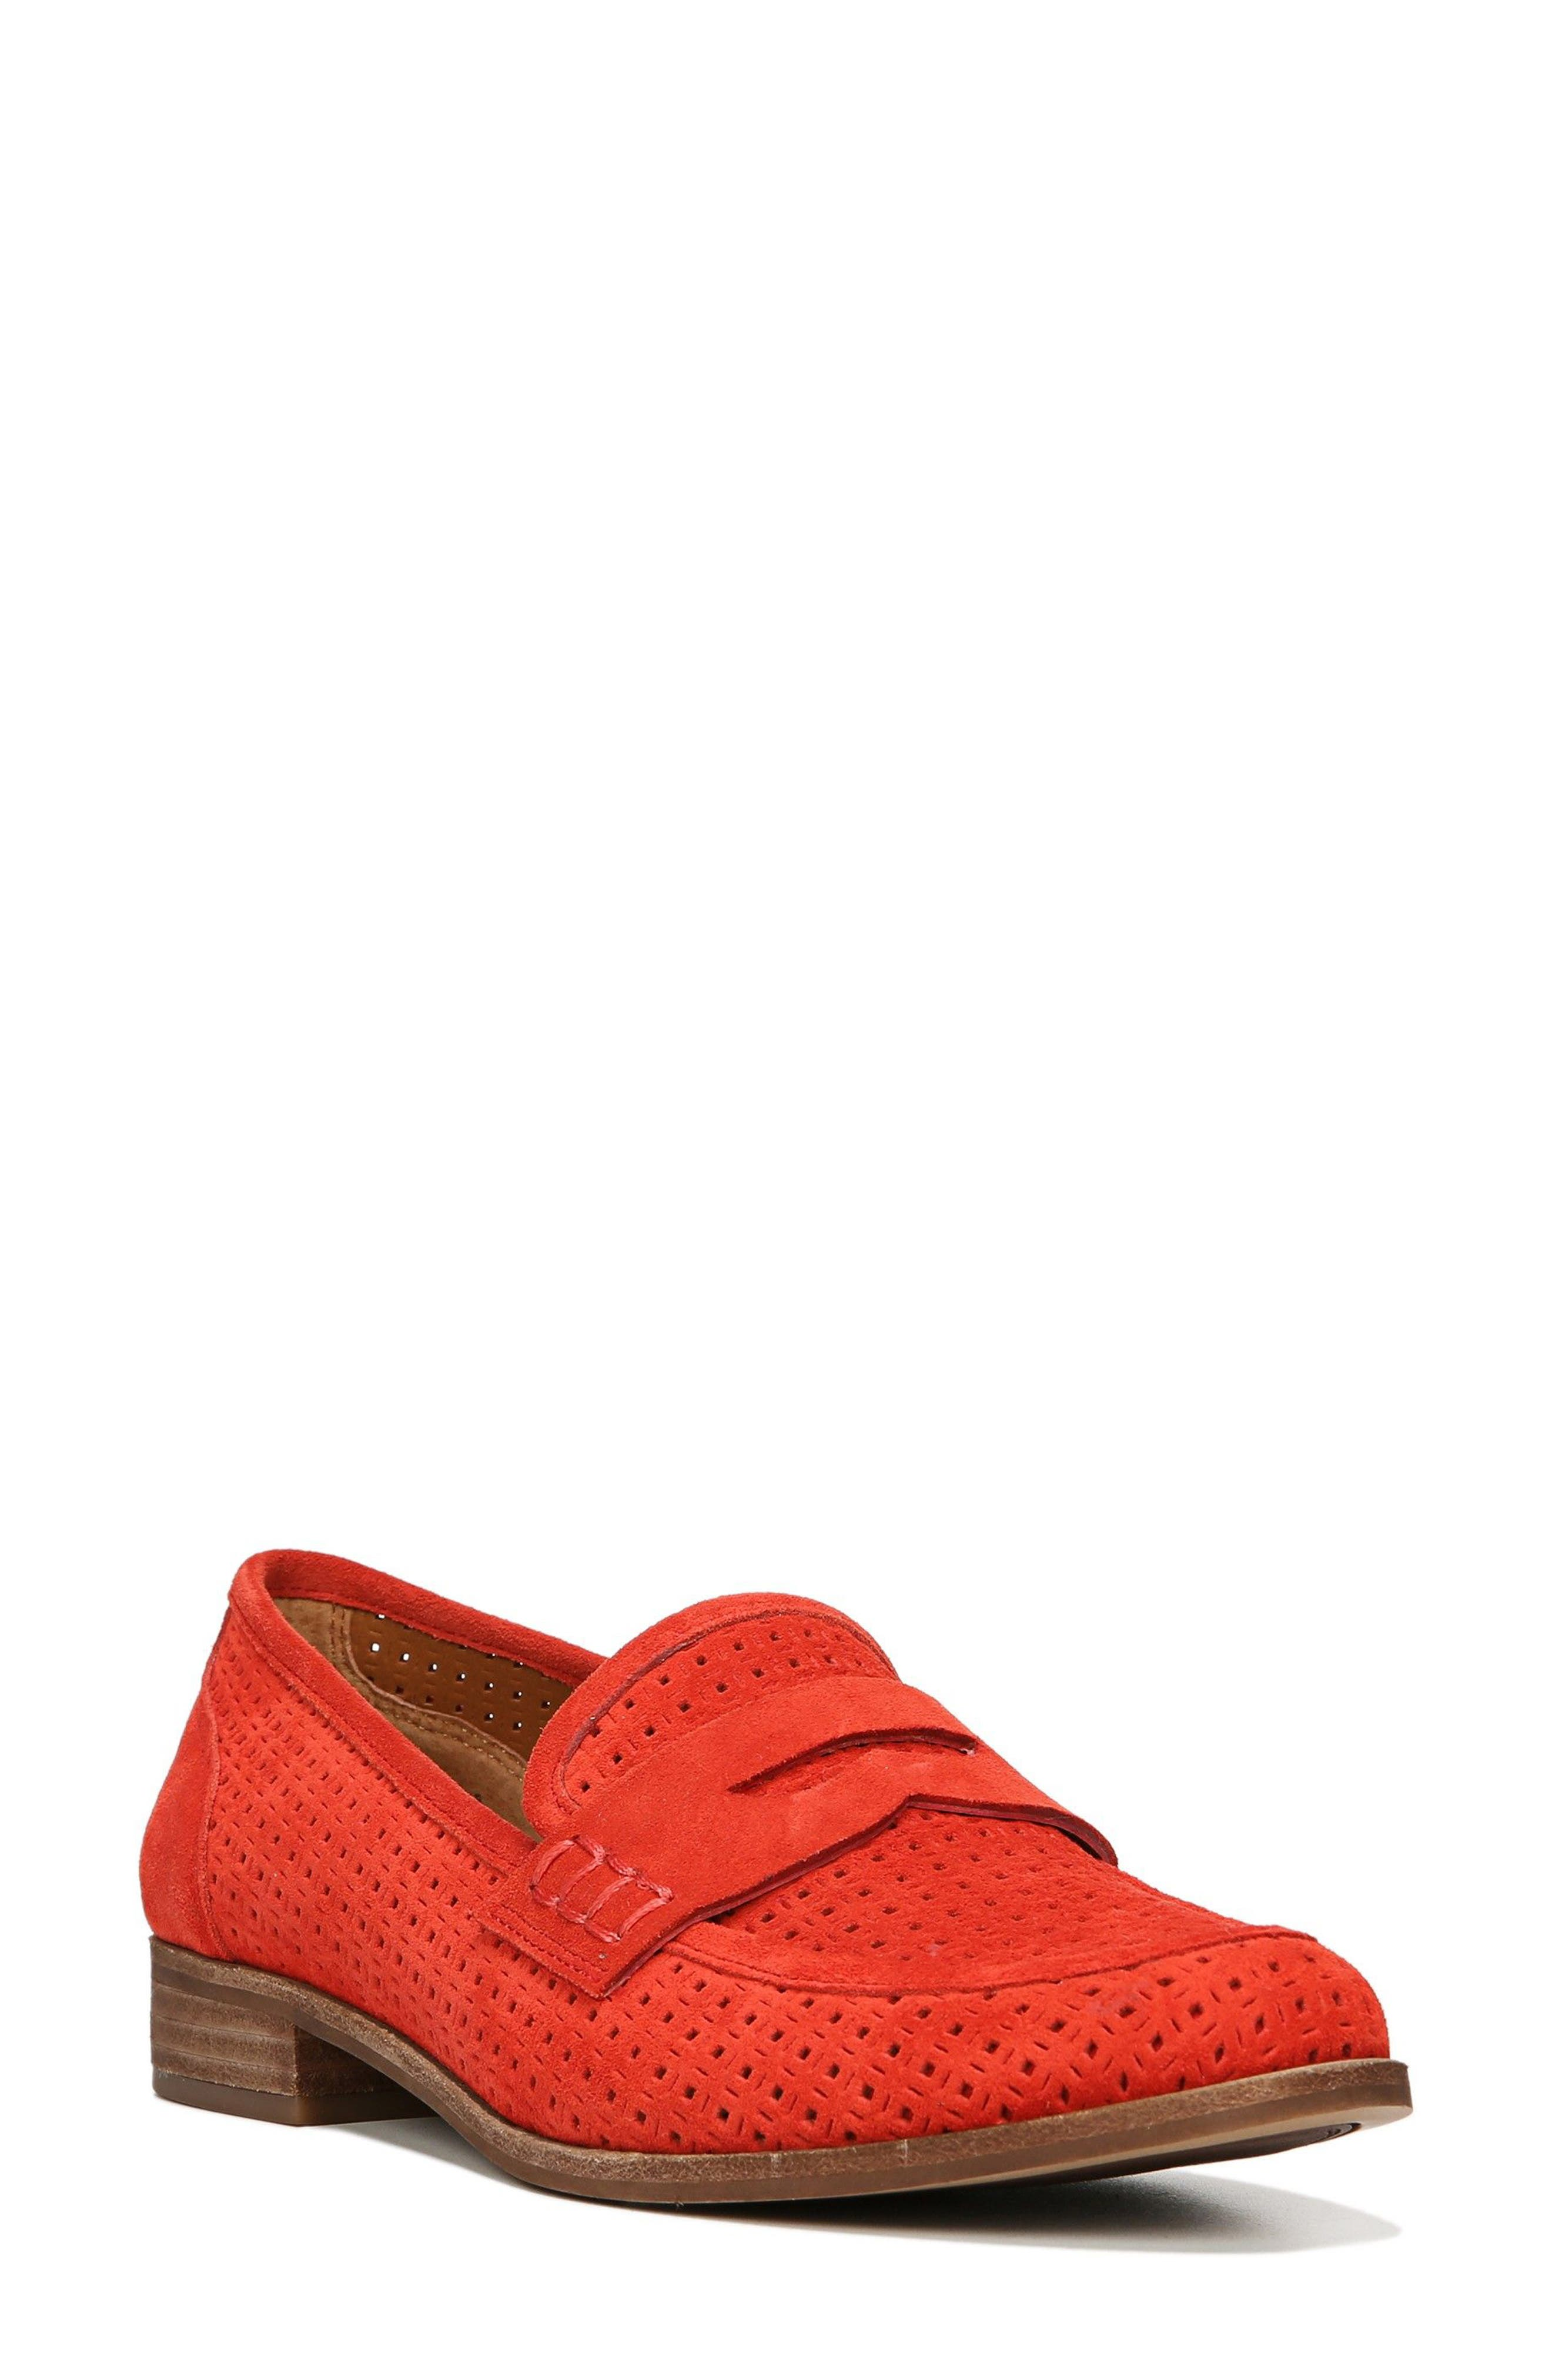 'Jolette' Penny Loafer,                             Main thumbnail 21, color,